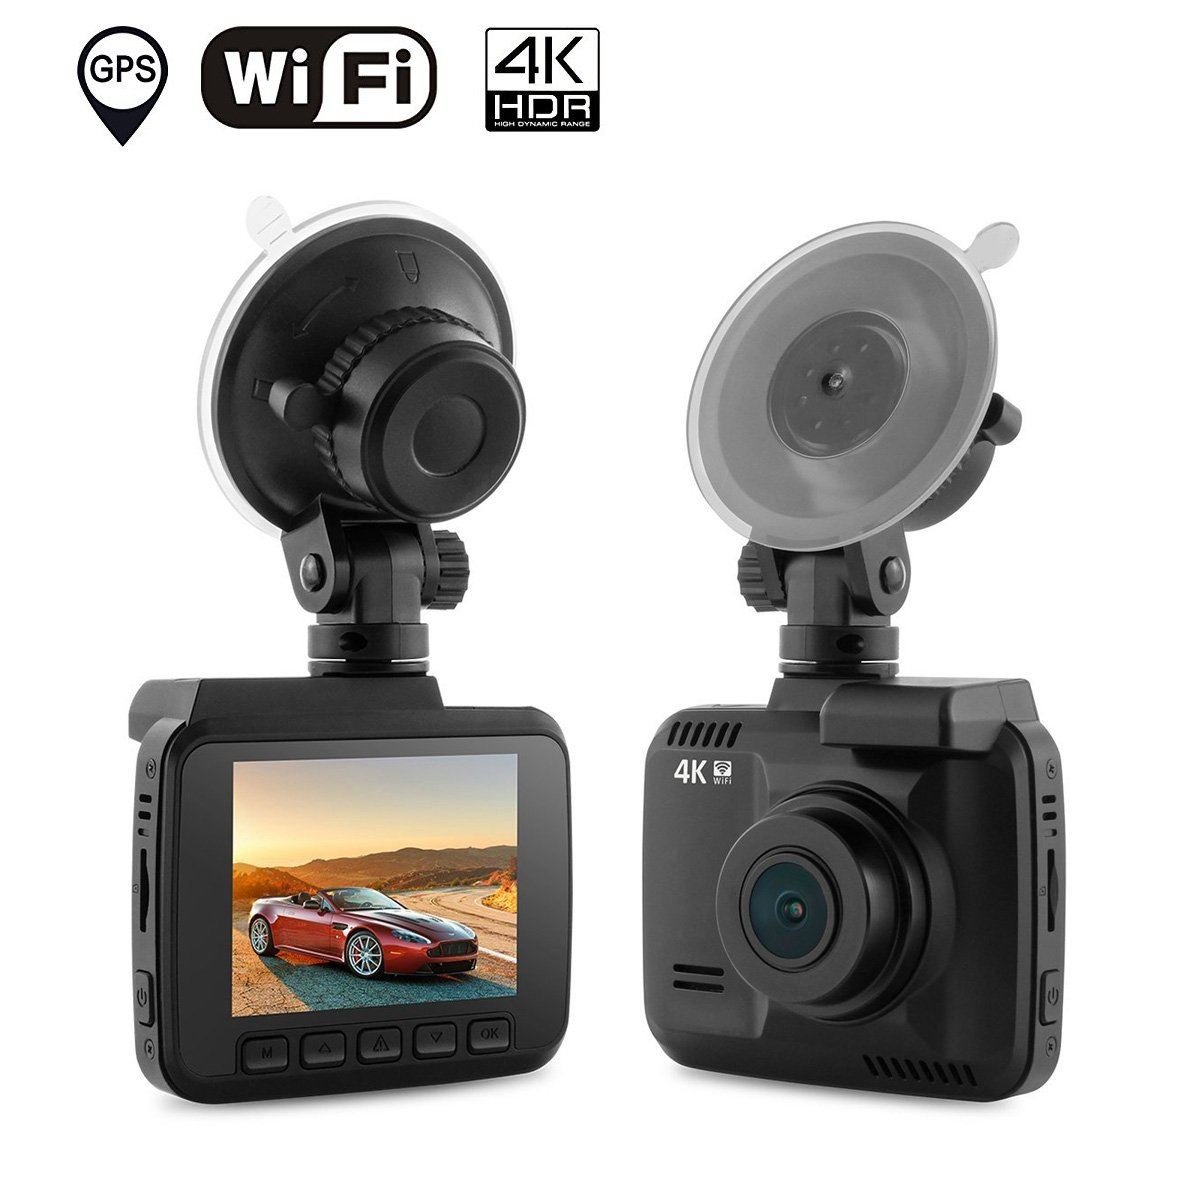 Dash Cam Car DVR Dashboard Camera Recorder with Built-In WiFi & GPS, 4K FHD, APP Support, G-Sensor, 2.4'' LCD, 150 Degree Wide-Angle Lens, Loop Recording, Great Night Vision, Parking Monitor by AZDOME